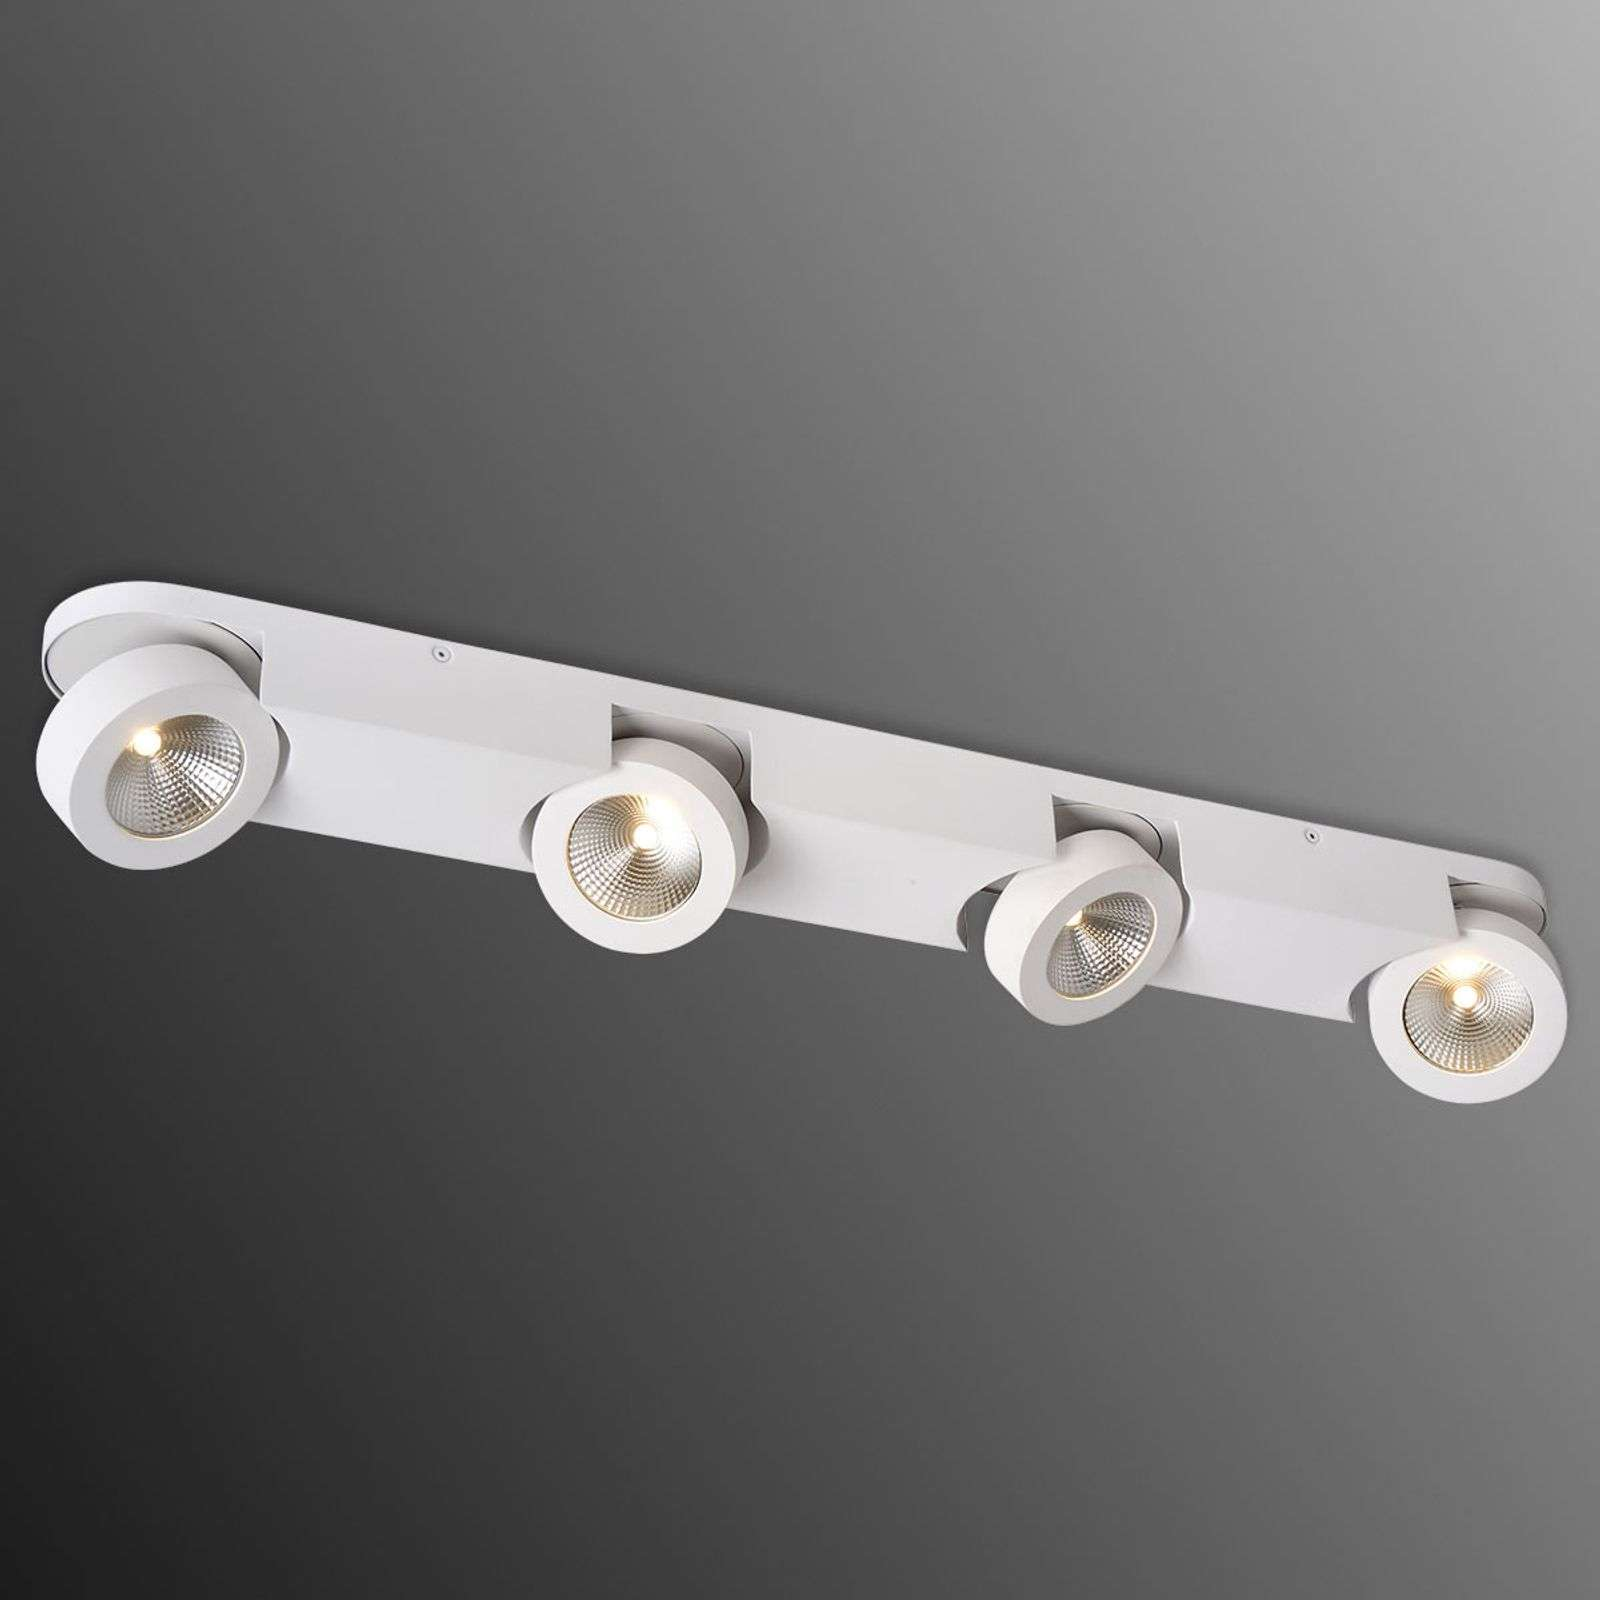 Foco LED cuatro luces Mitrax, ajustable